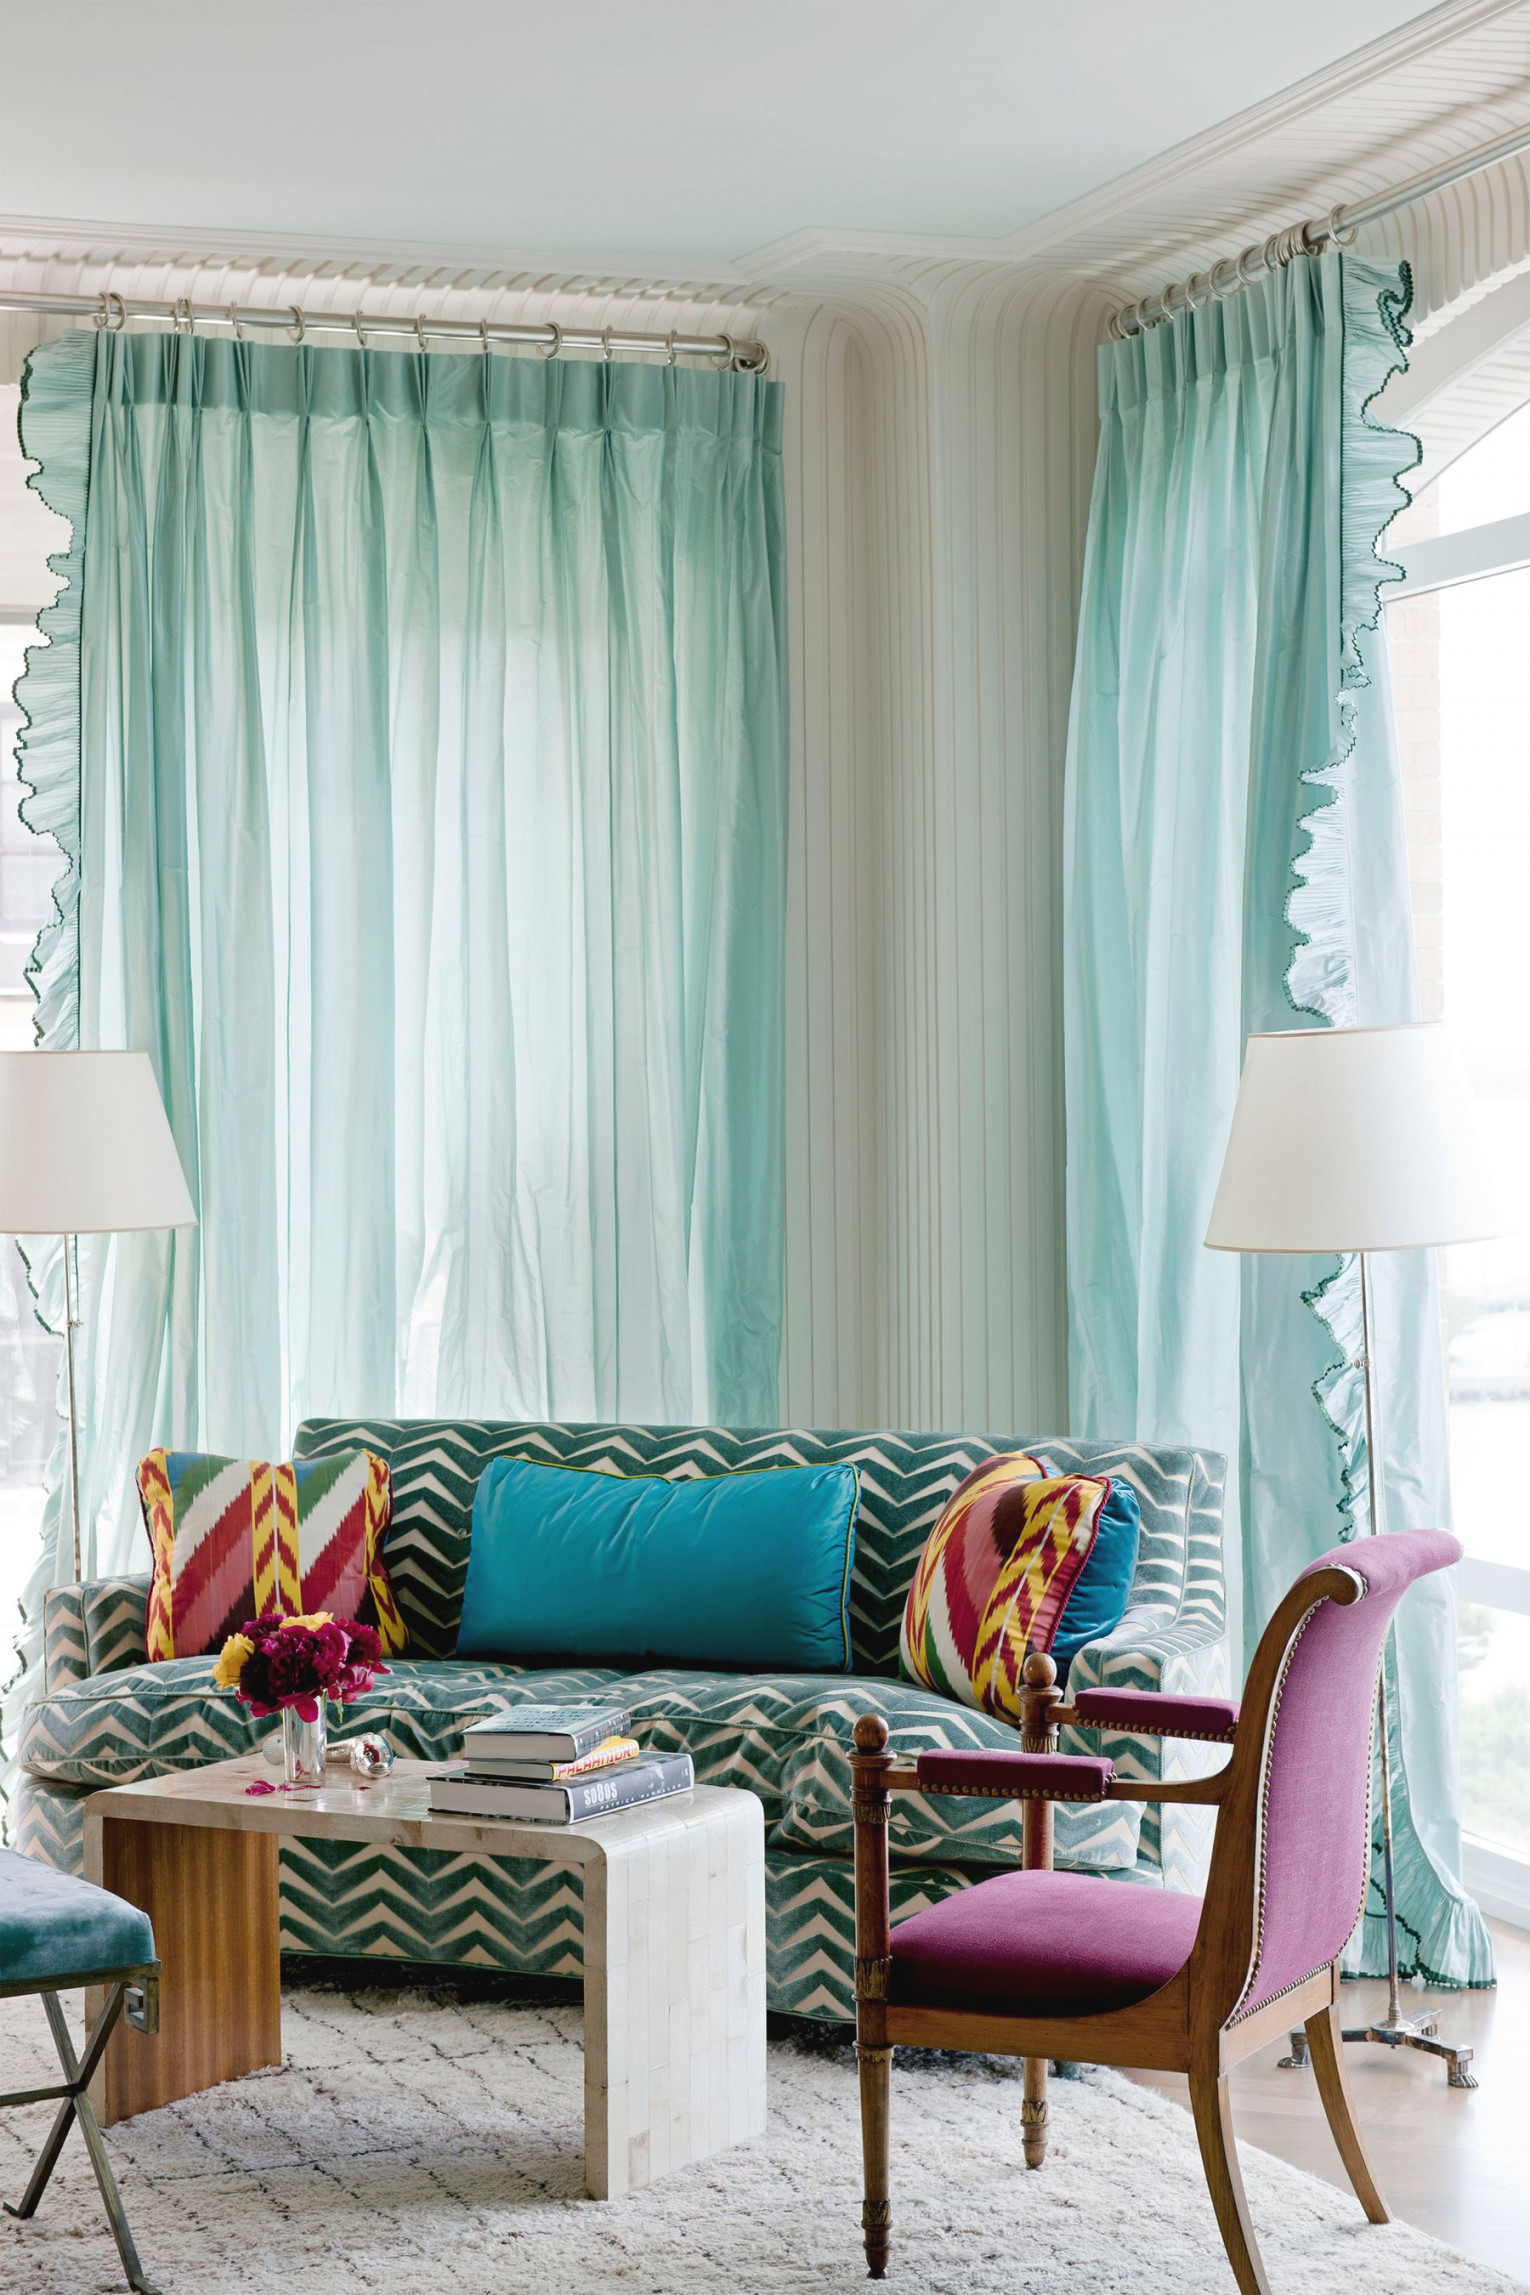 43 Best Window Treatment Ideas - Window Coverings, Curtains inside Curtain Styles For Living Rooms